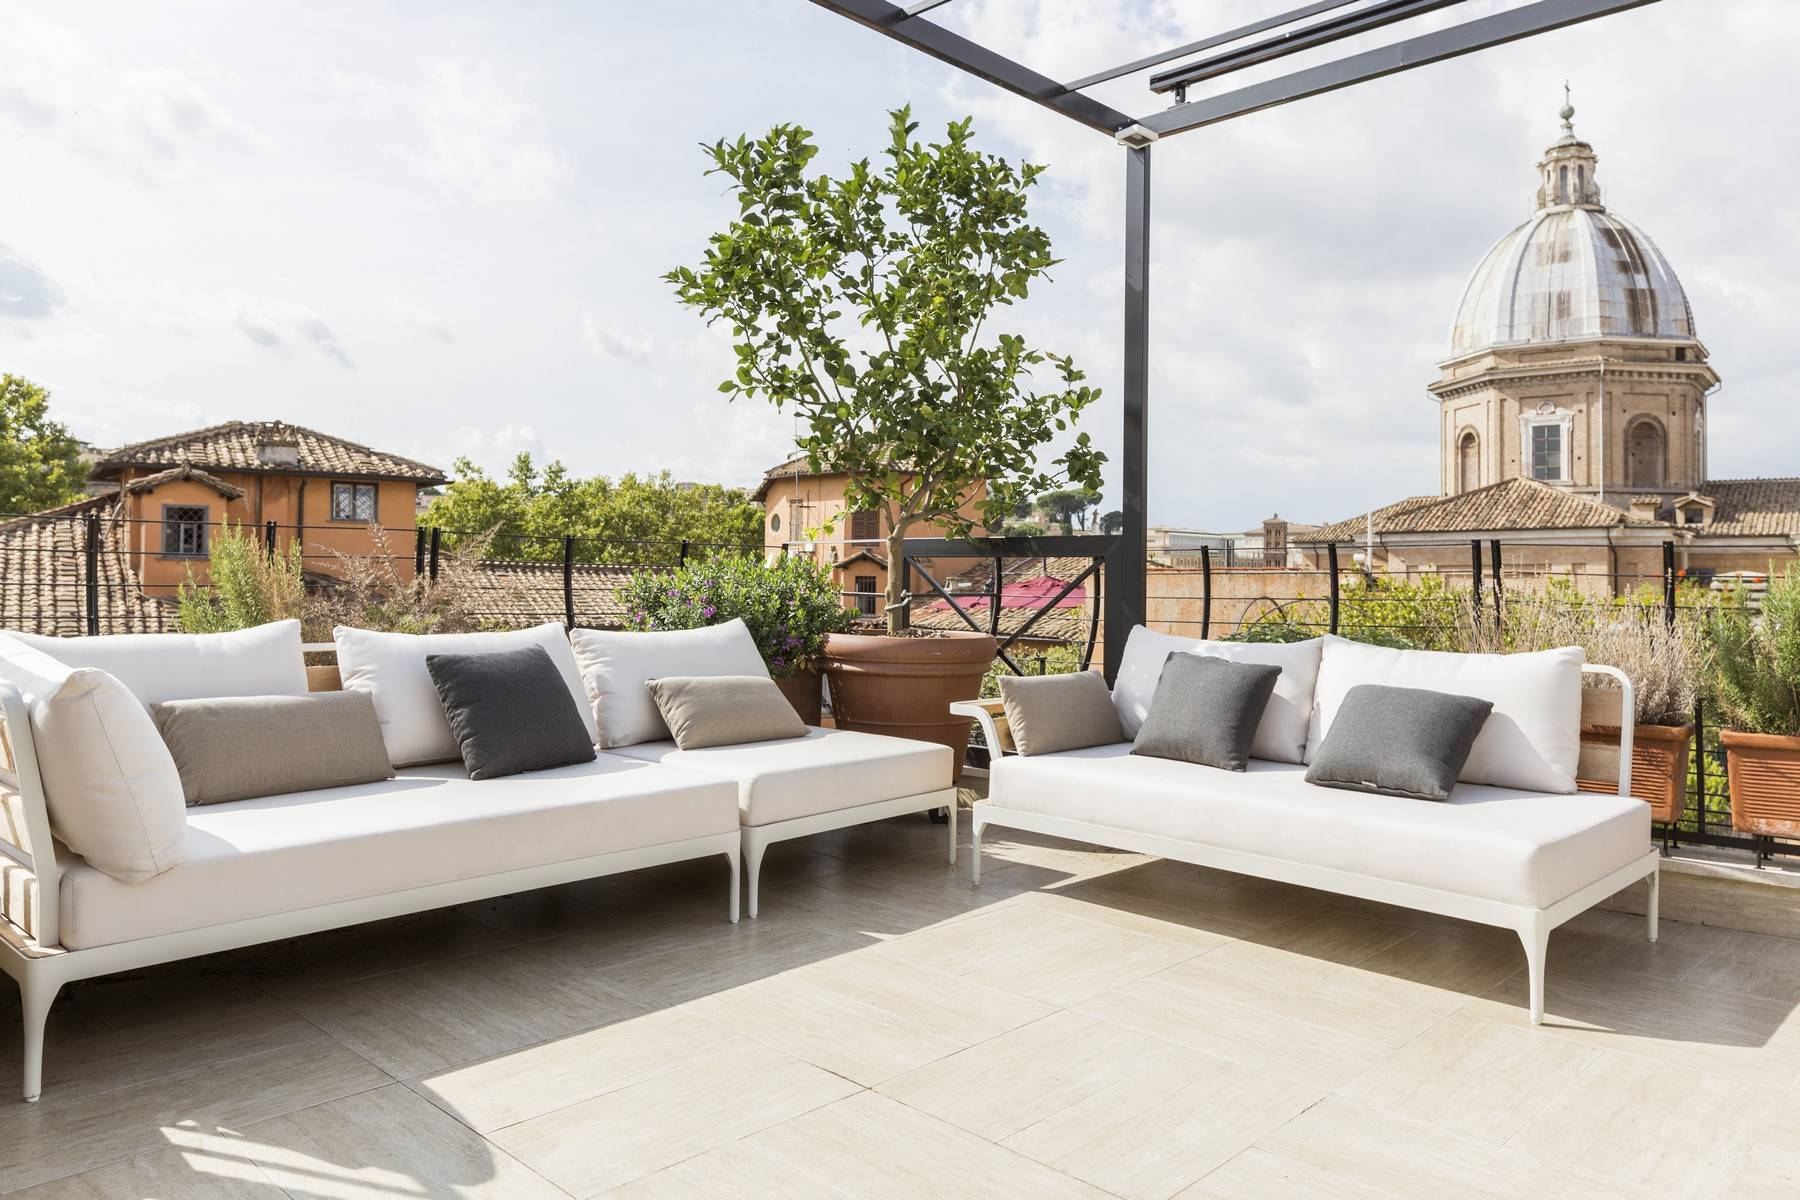 Apartments 为 出租 在 Charming apartment with terrace in the center of Rome 罗马, 罗马 意大利